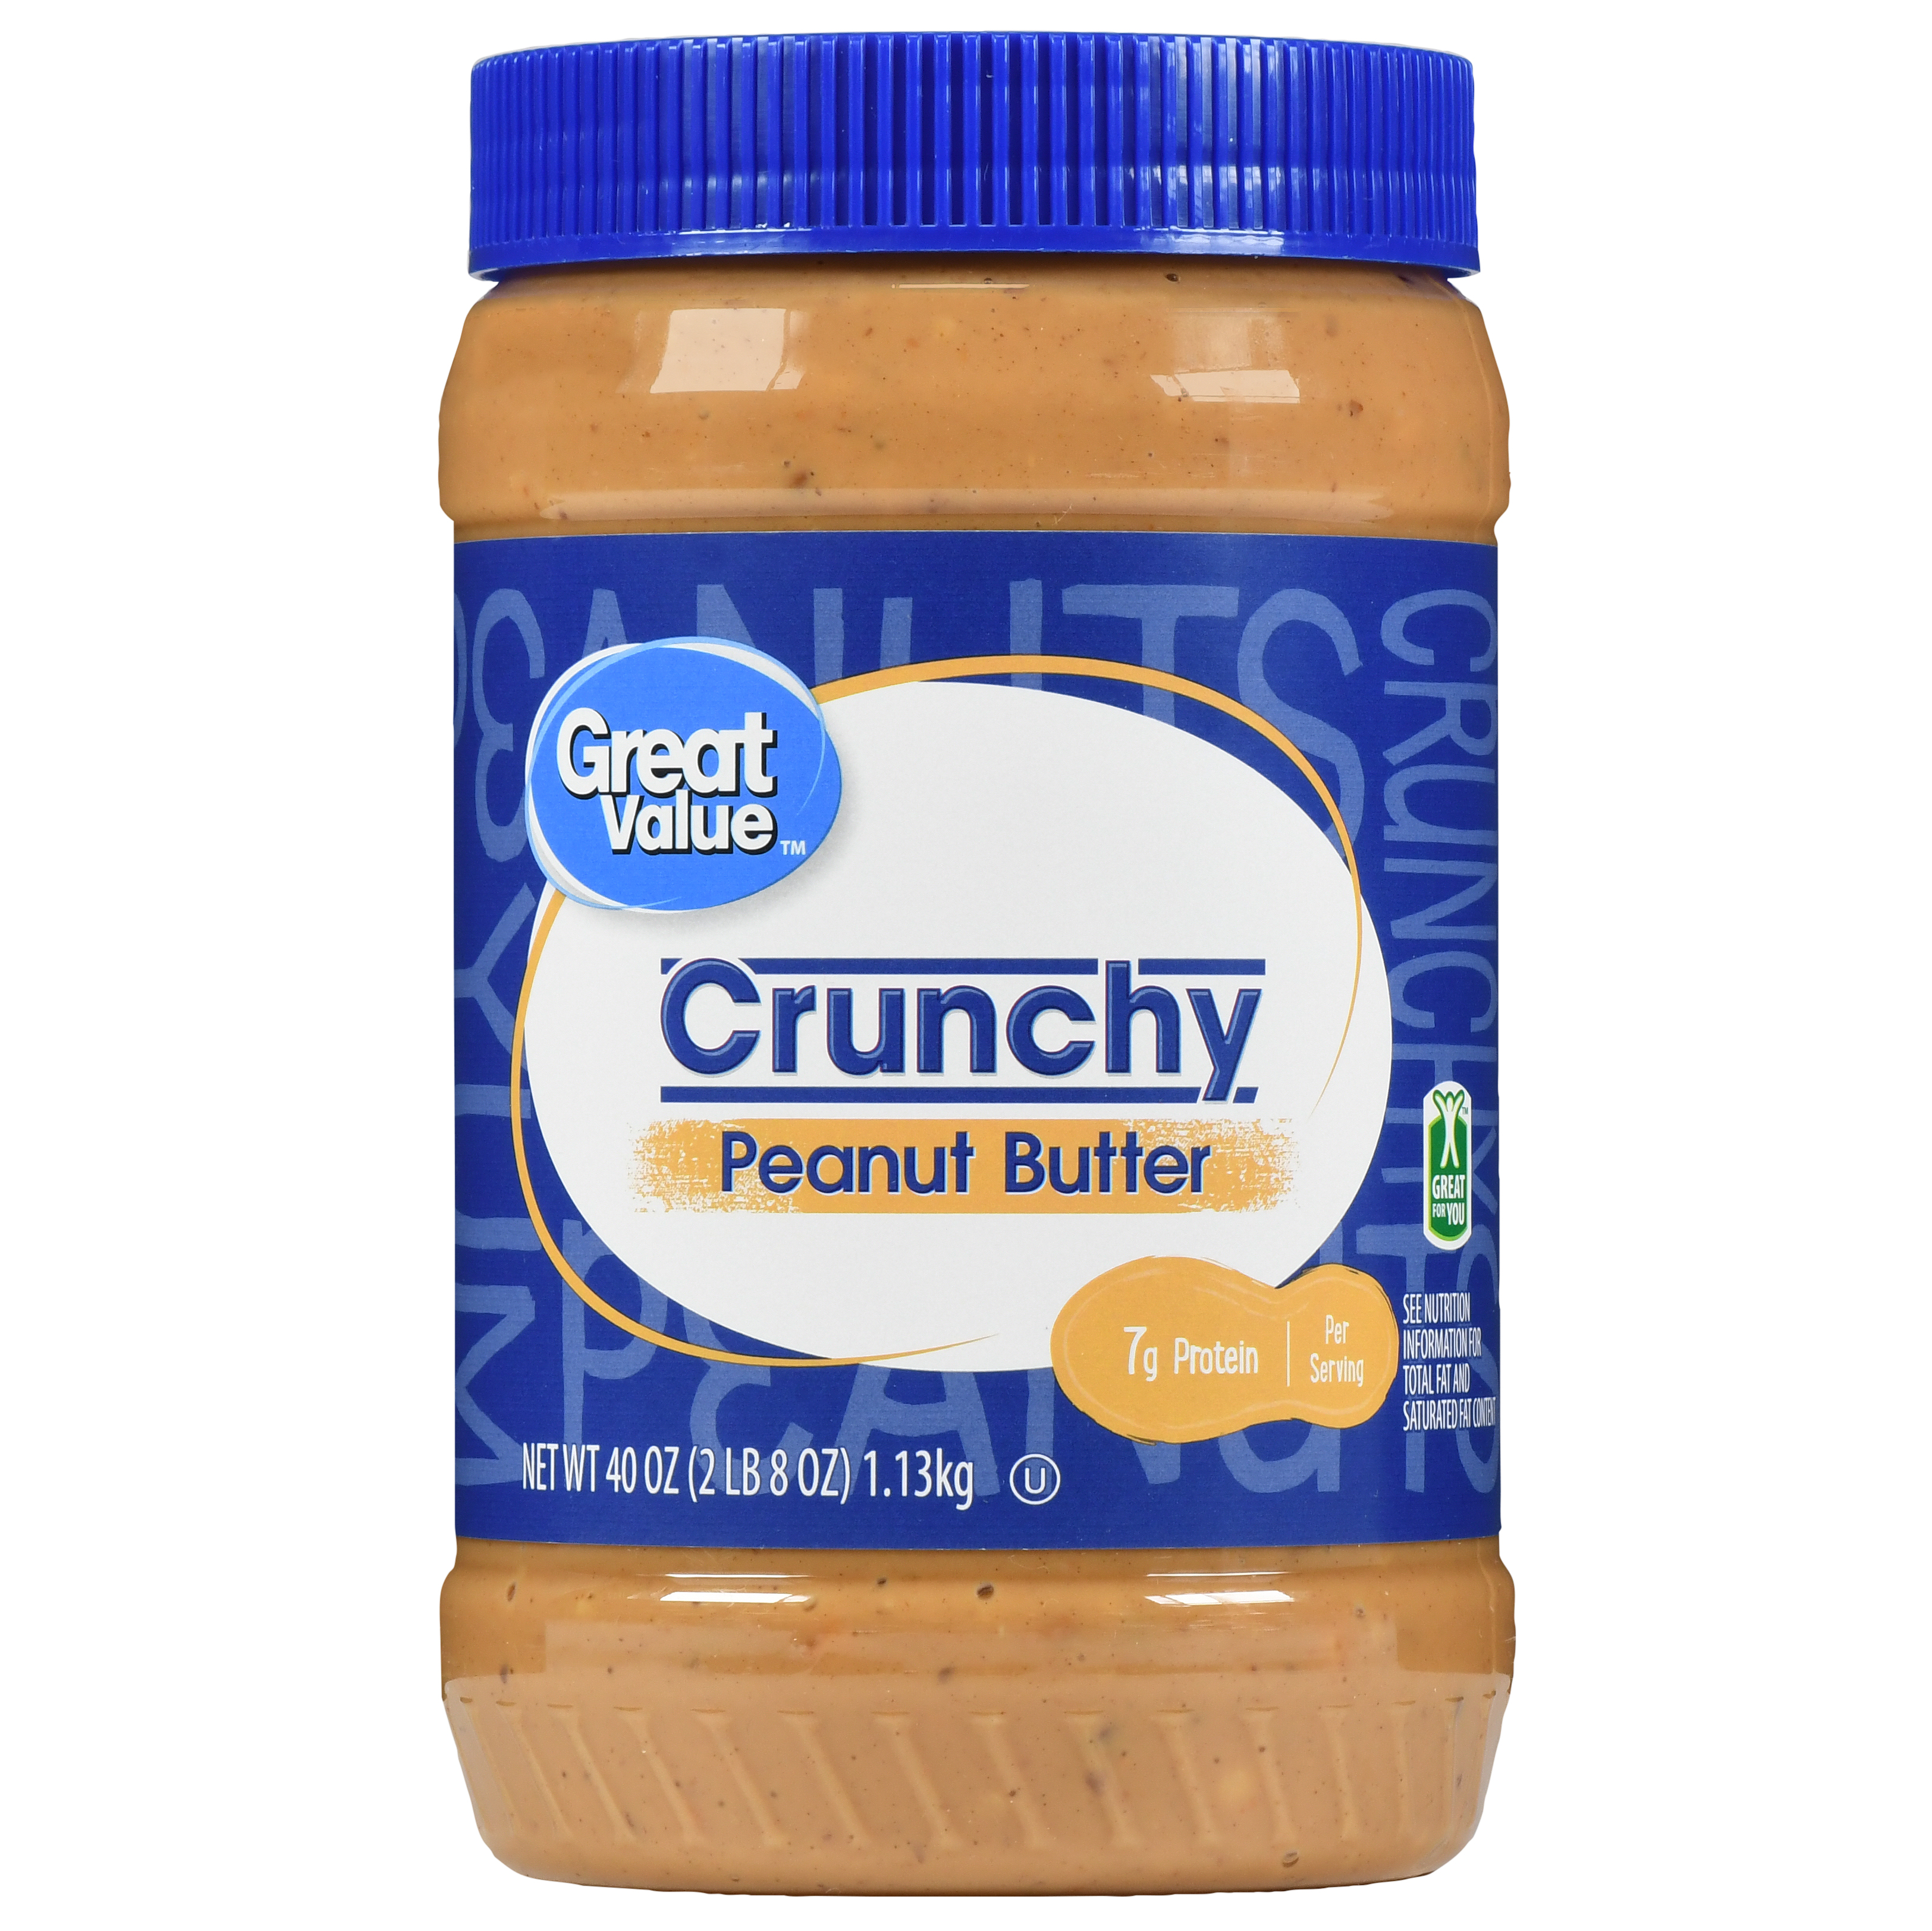 Great Value Crunchy Peanut Butter, 40 oz